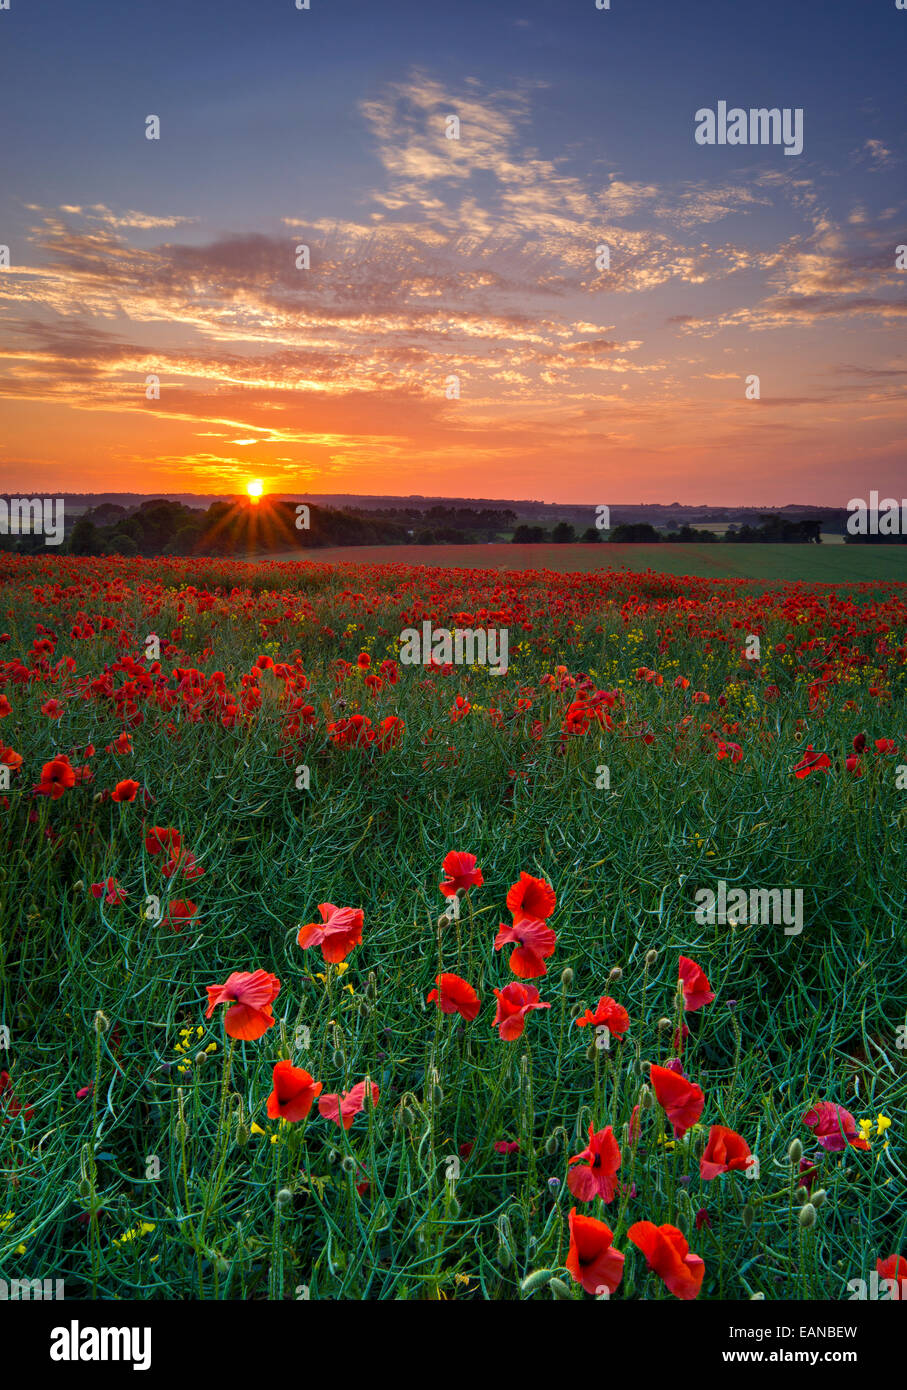 Poppies at Sunset, Wiltshire,England - Stock Image